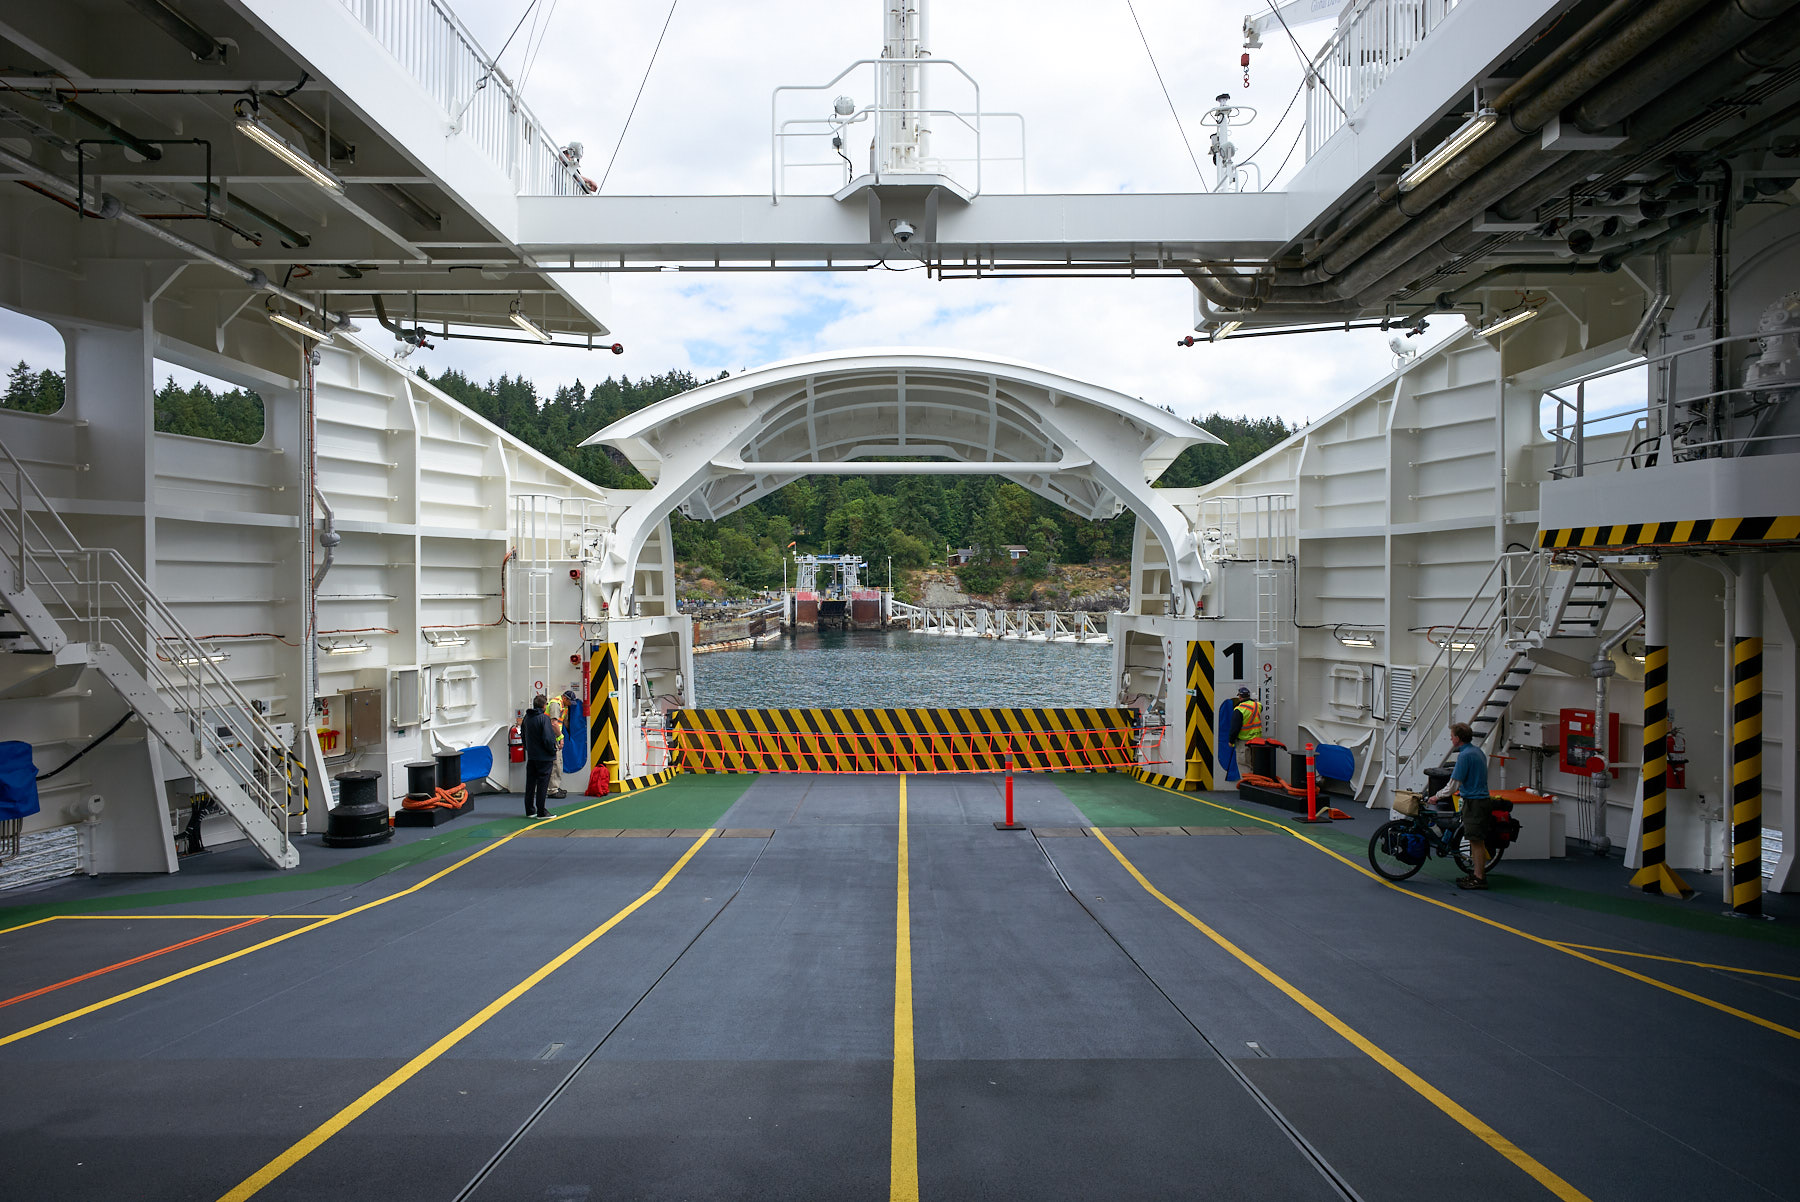 Bow guard up, arriving on Pender Island